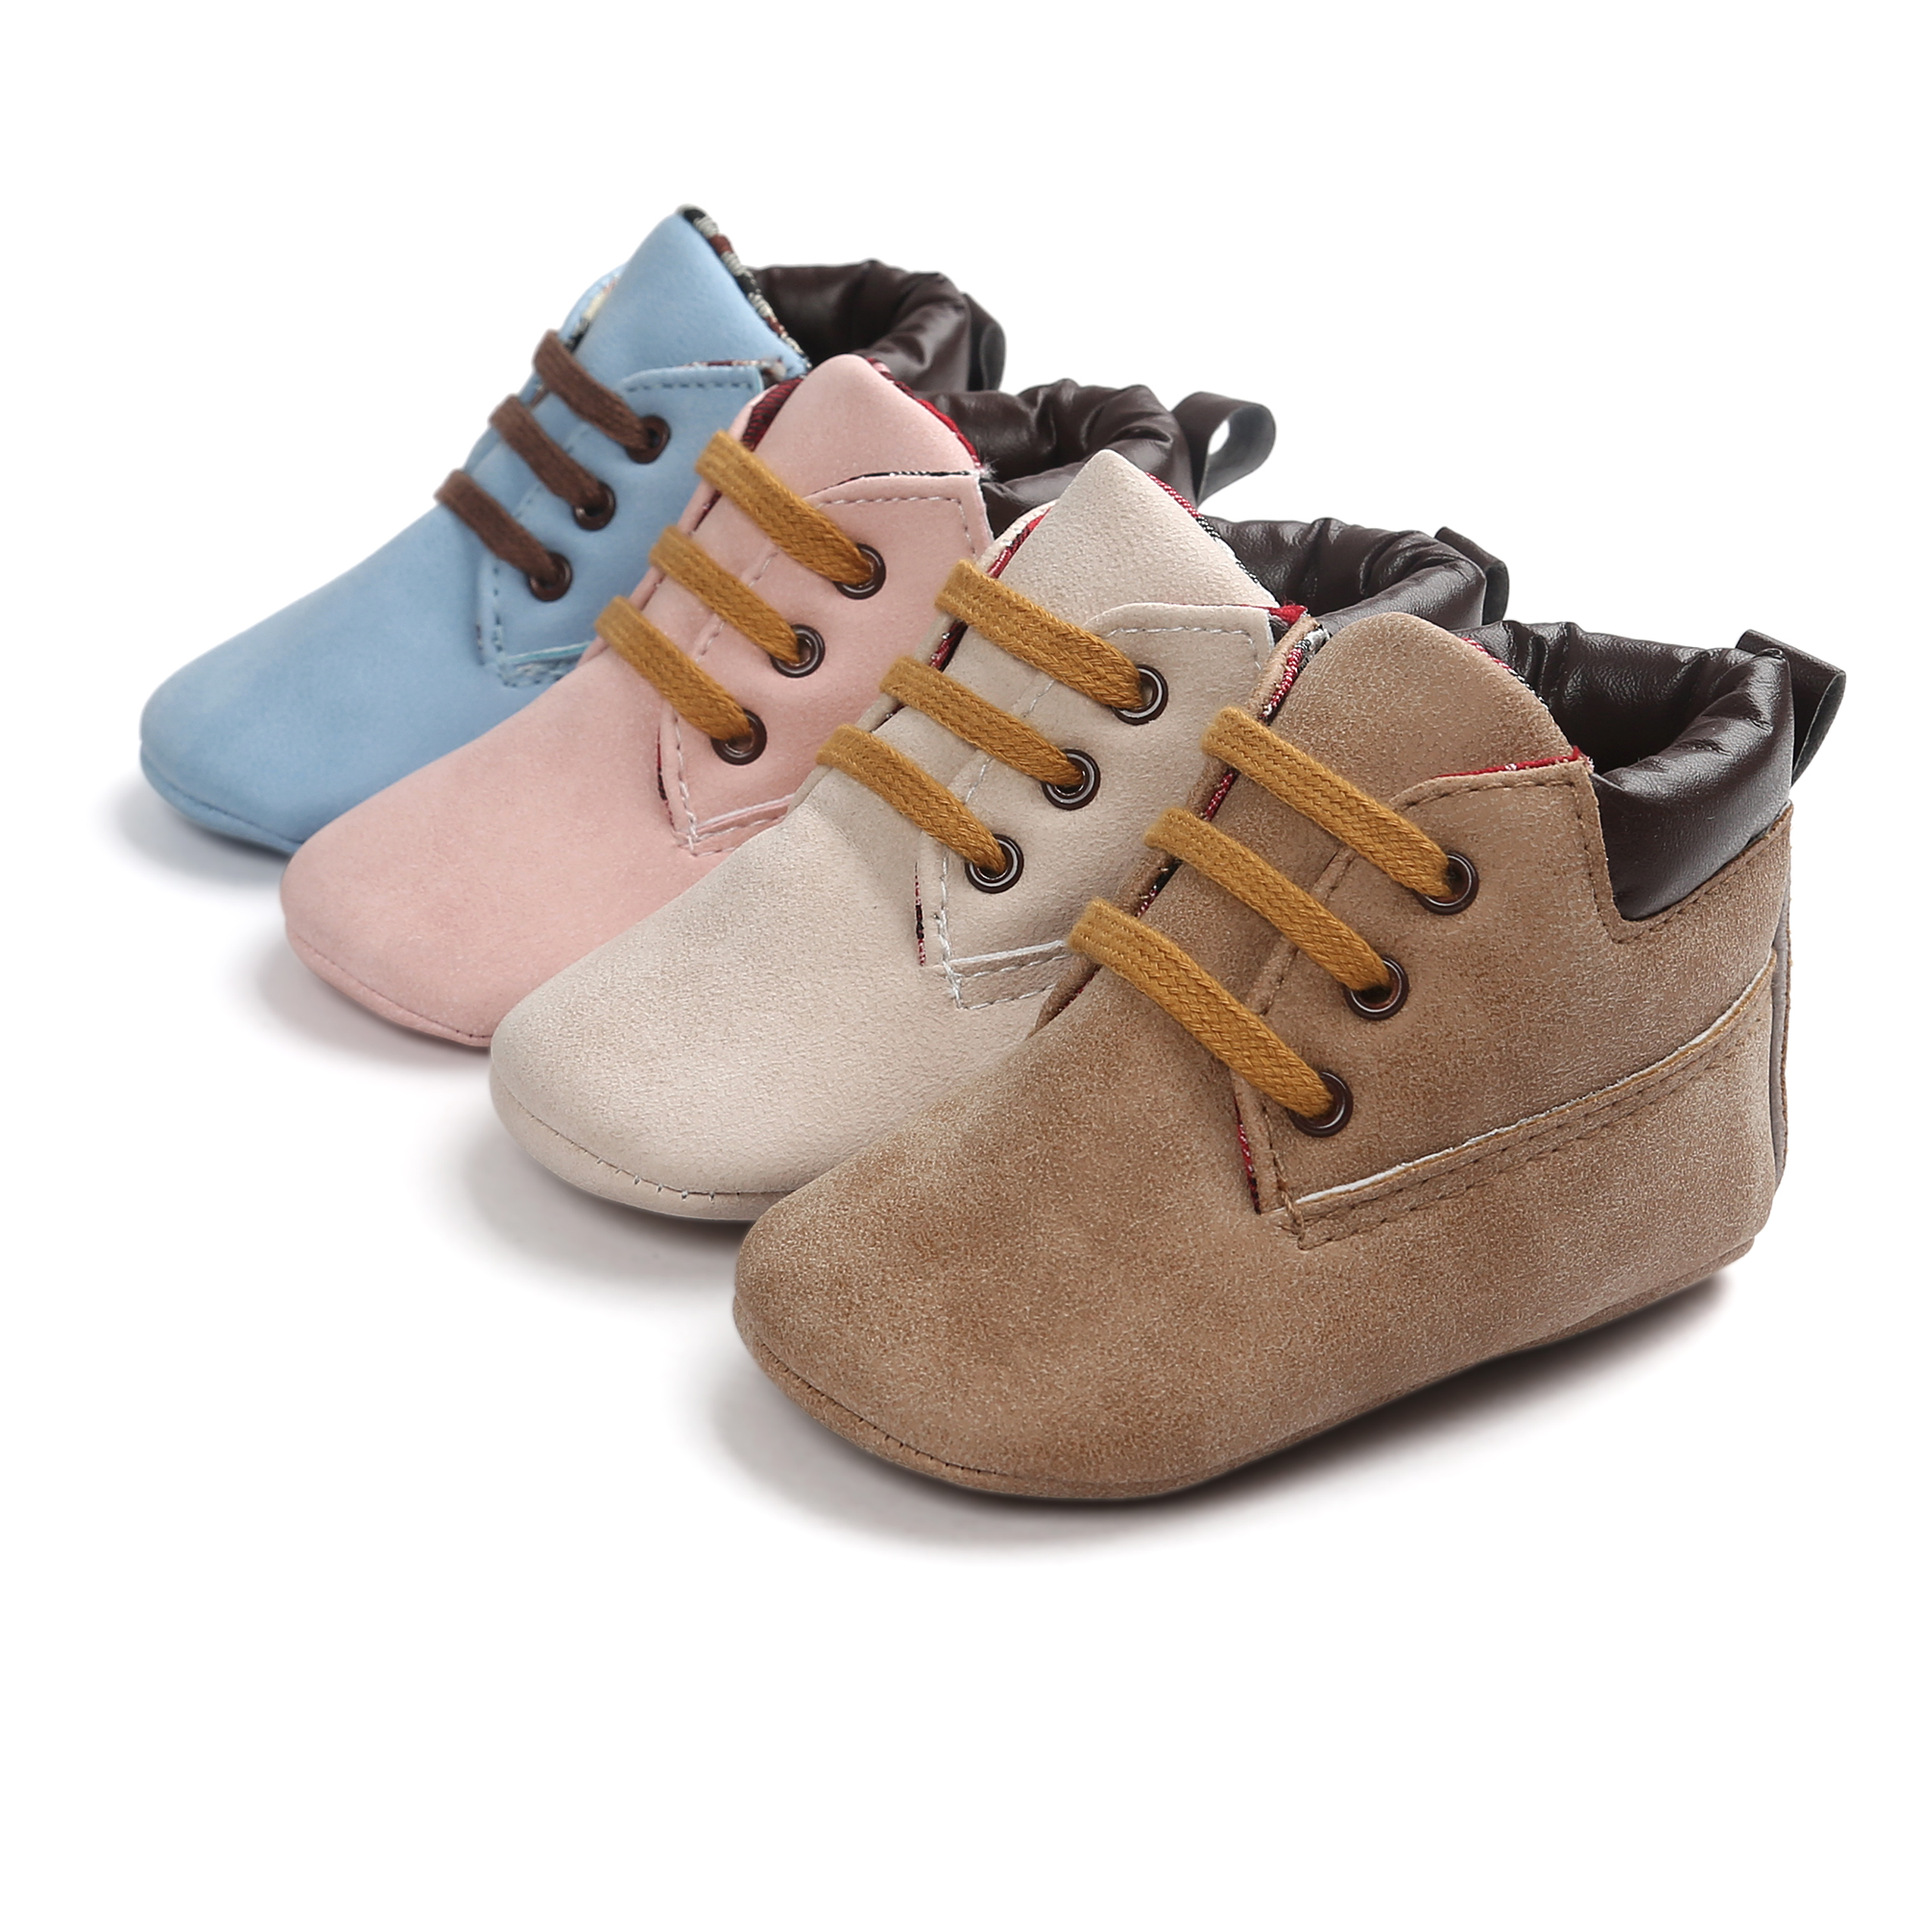 ROMIRUS-Baby-First-Walkers-Baby-Shoes-Soft-Bottom-Fashion-Tassels-Baby-Moccasin-Non-slip-PU-Leather-Prewalkers-Boots-1